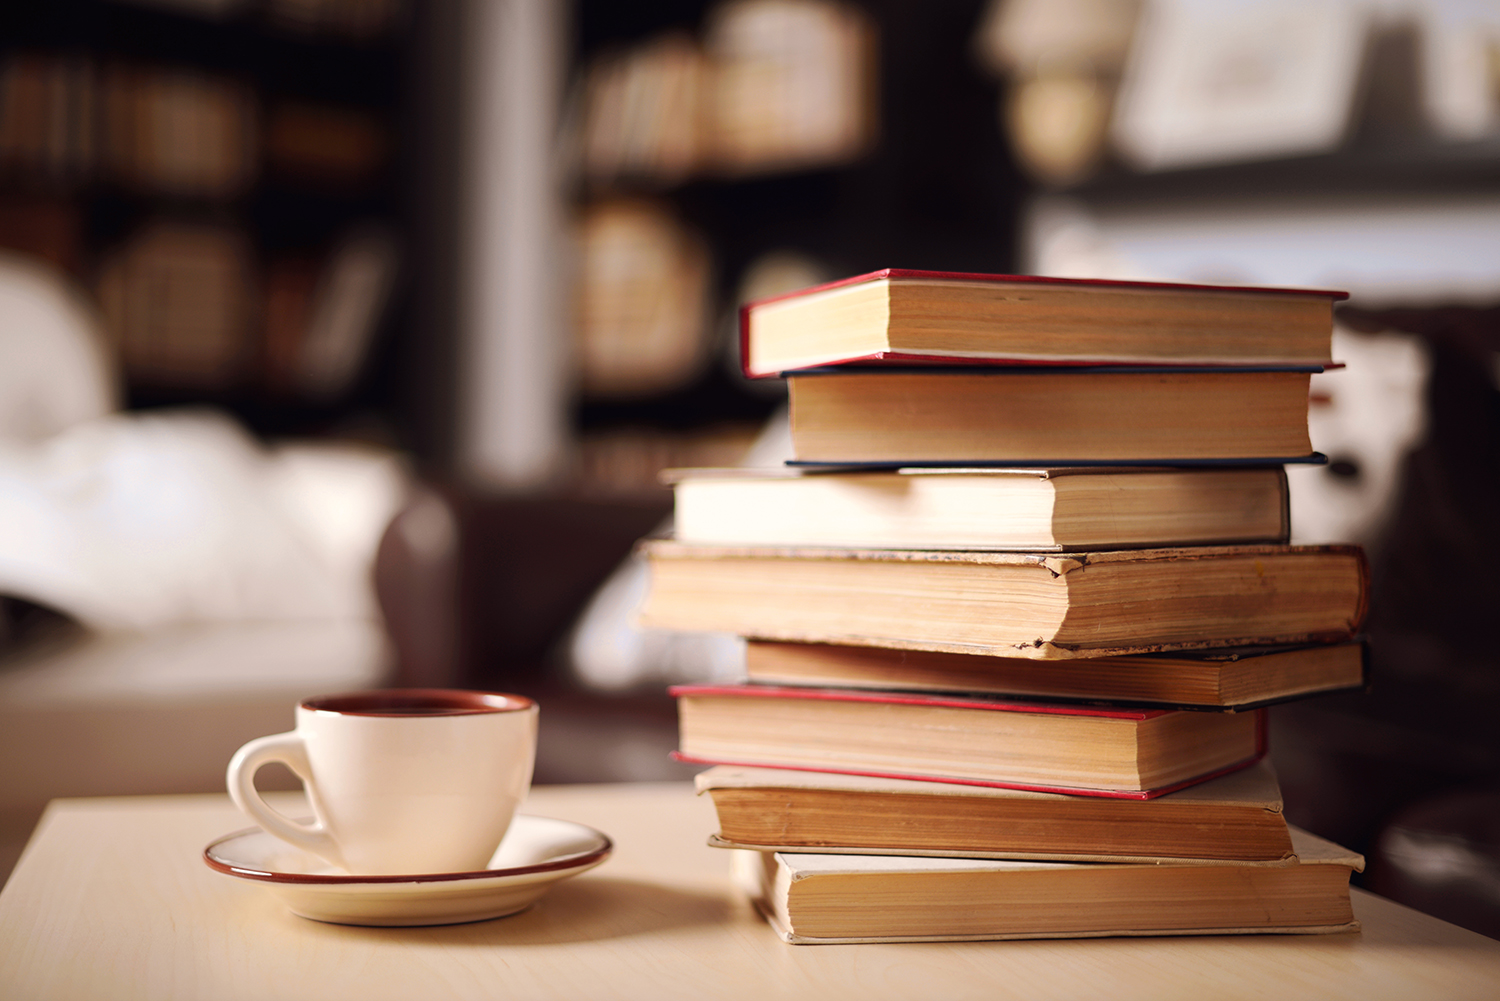 Books Stacked on Table